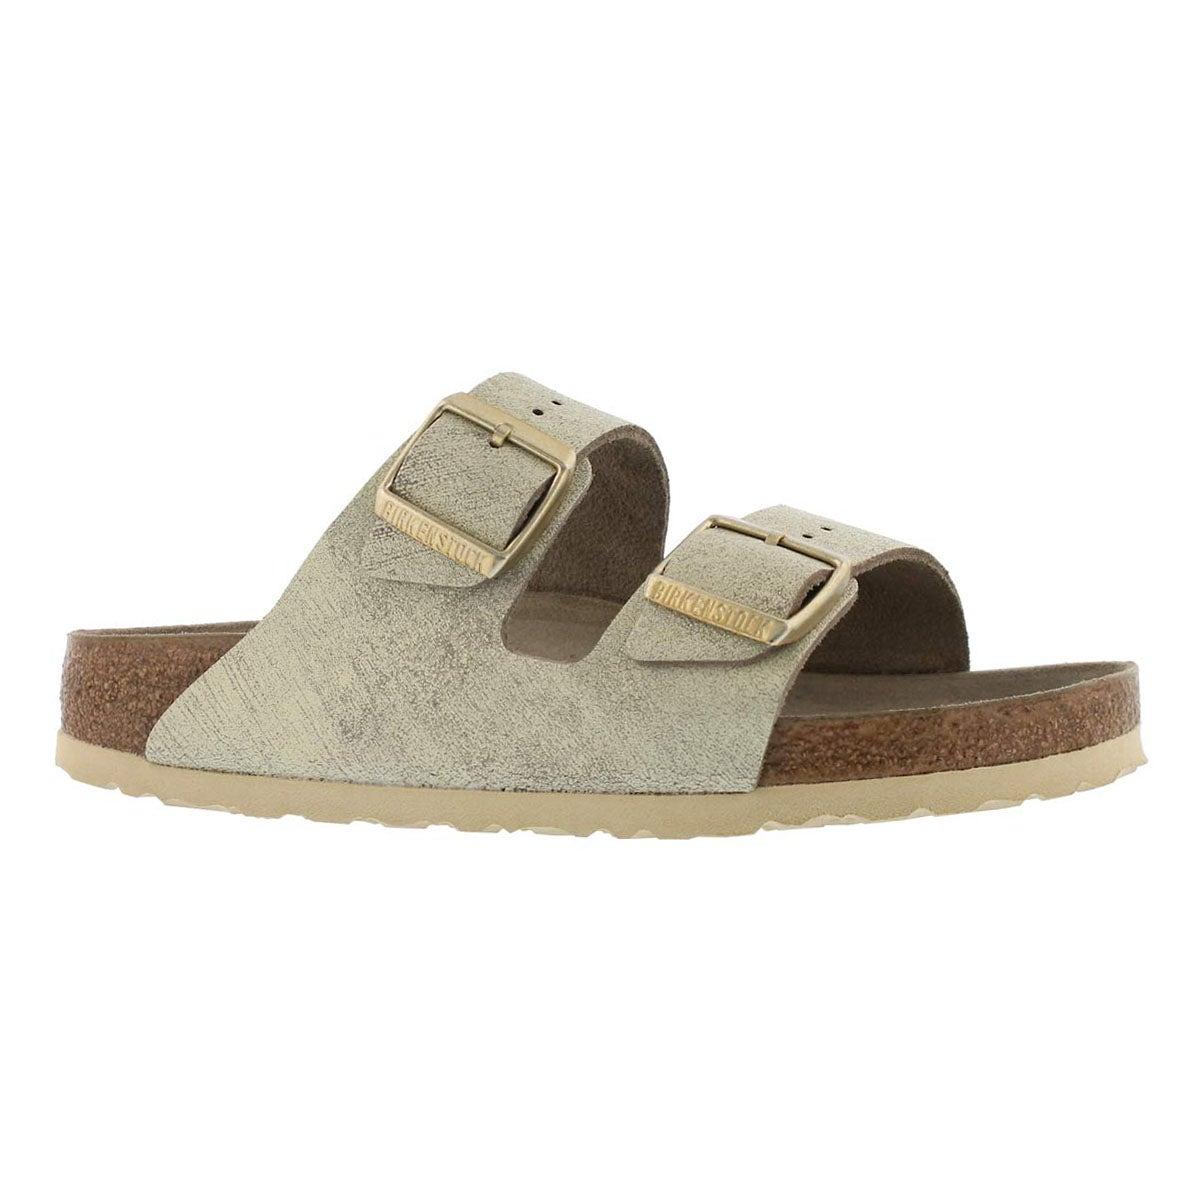 Women's ARIZONA LTR wshd mtlc gld sandals - Narrow